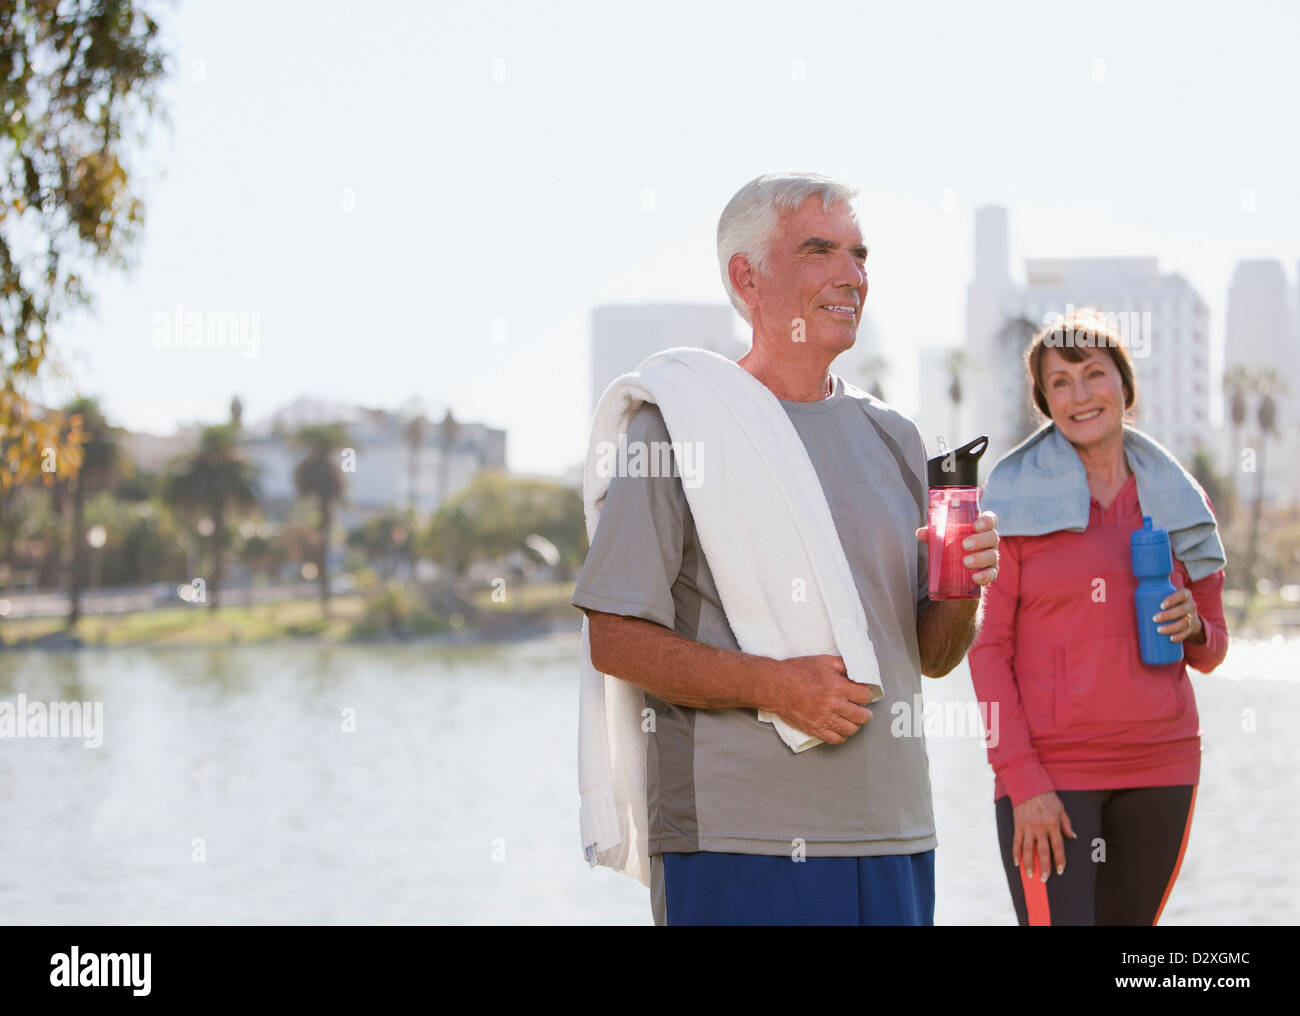 Older couple drinking water after workout Stock Photo